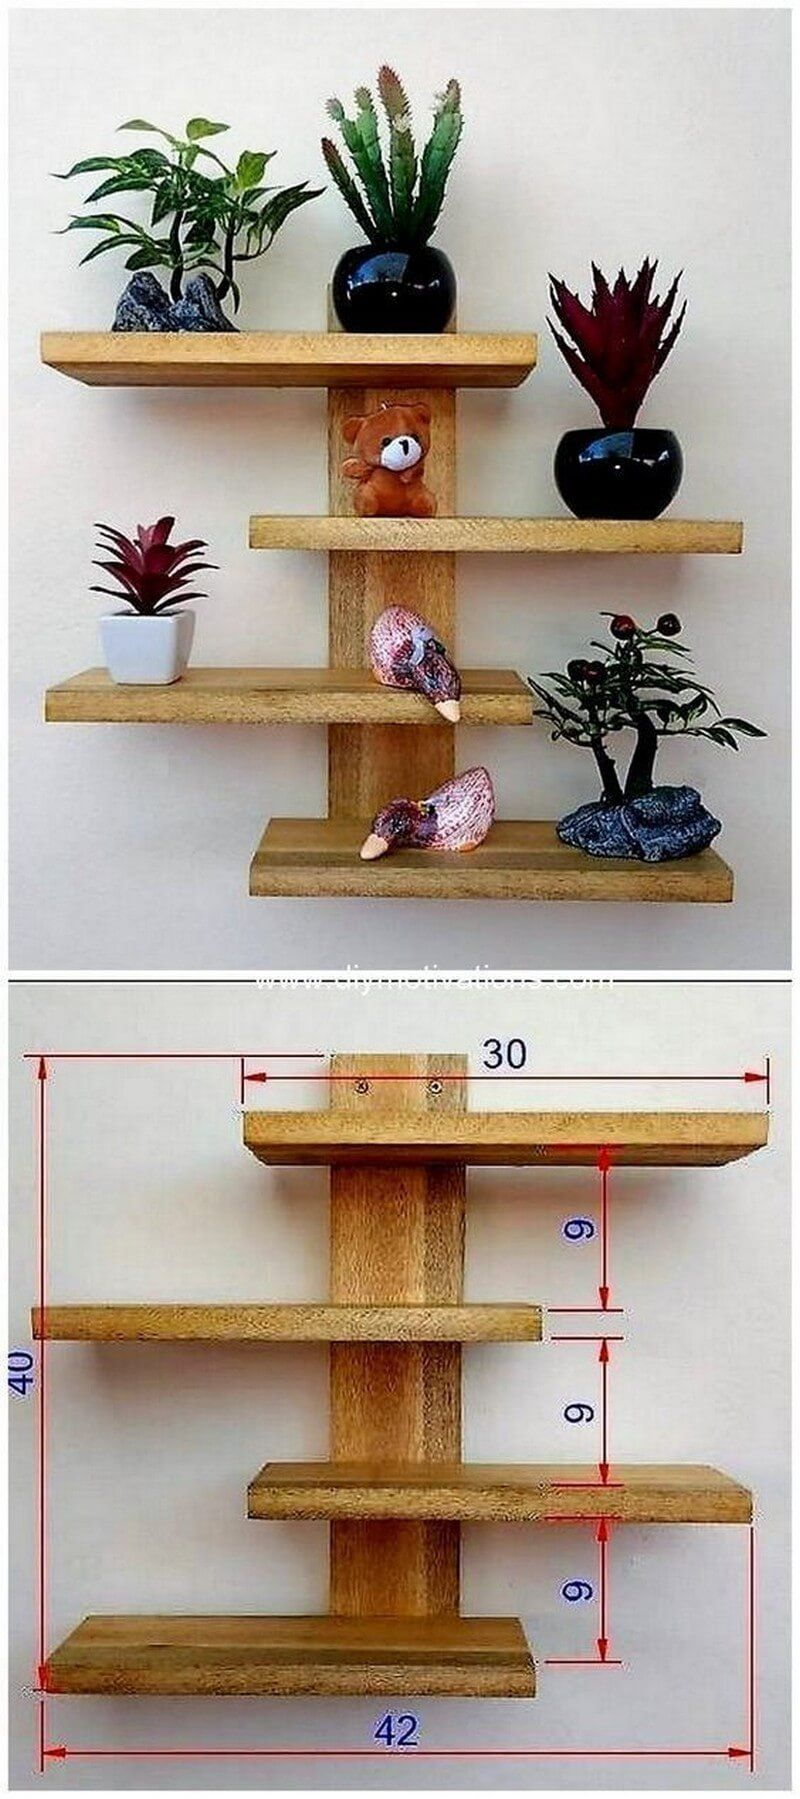 23 Best Ideas For Recycling The Wooden Pallet And Making Furniture 1001 Motiveideas Pallet Diy Wooden Pallet Projects Diy Pallet Projects